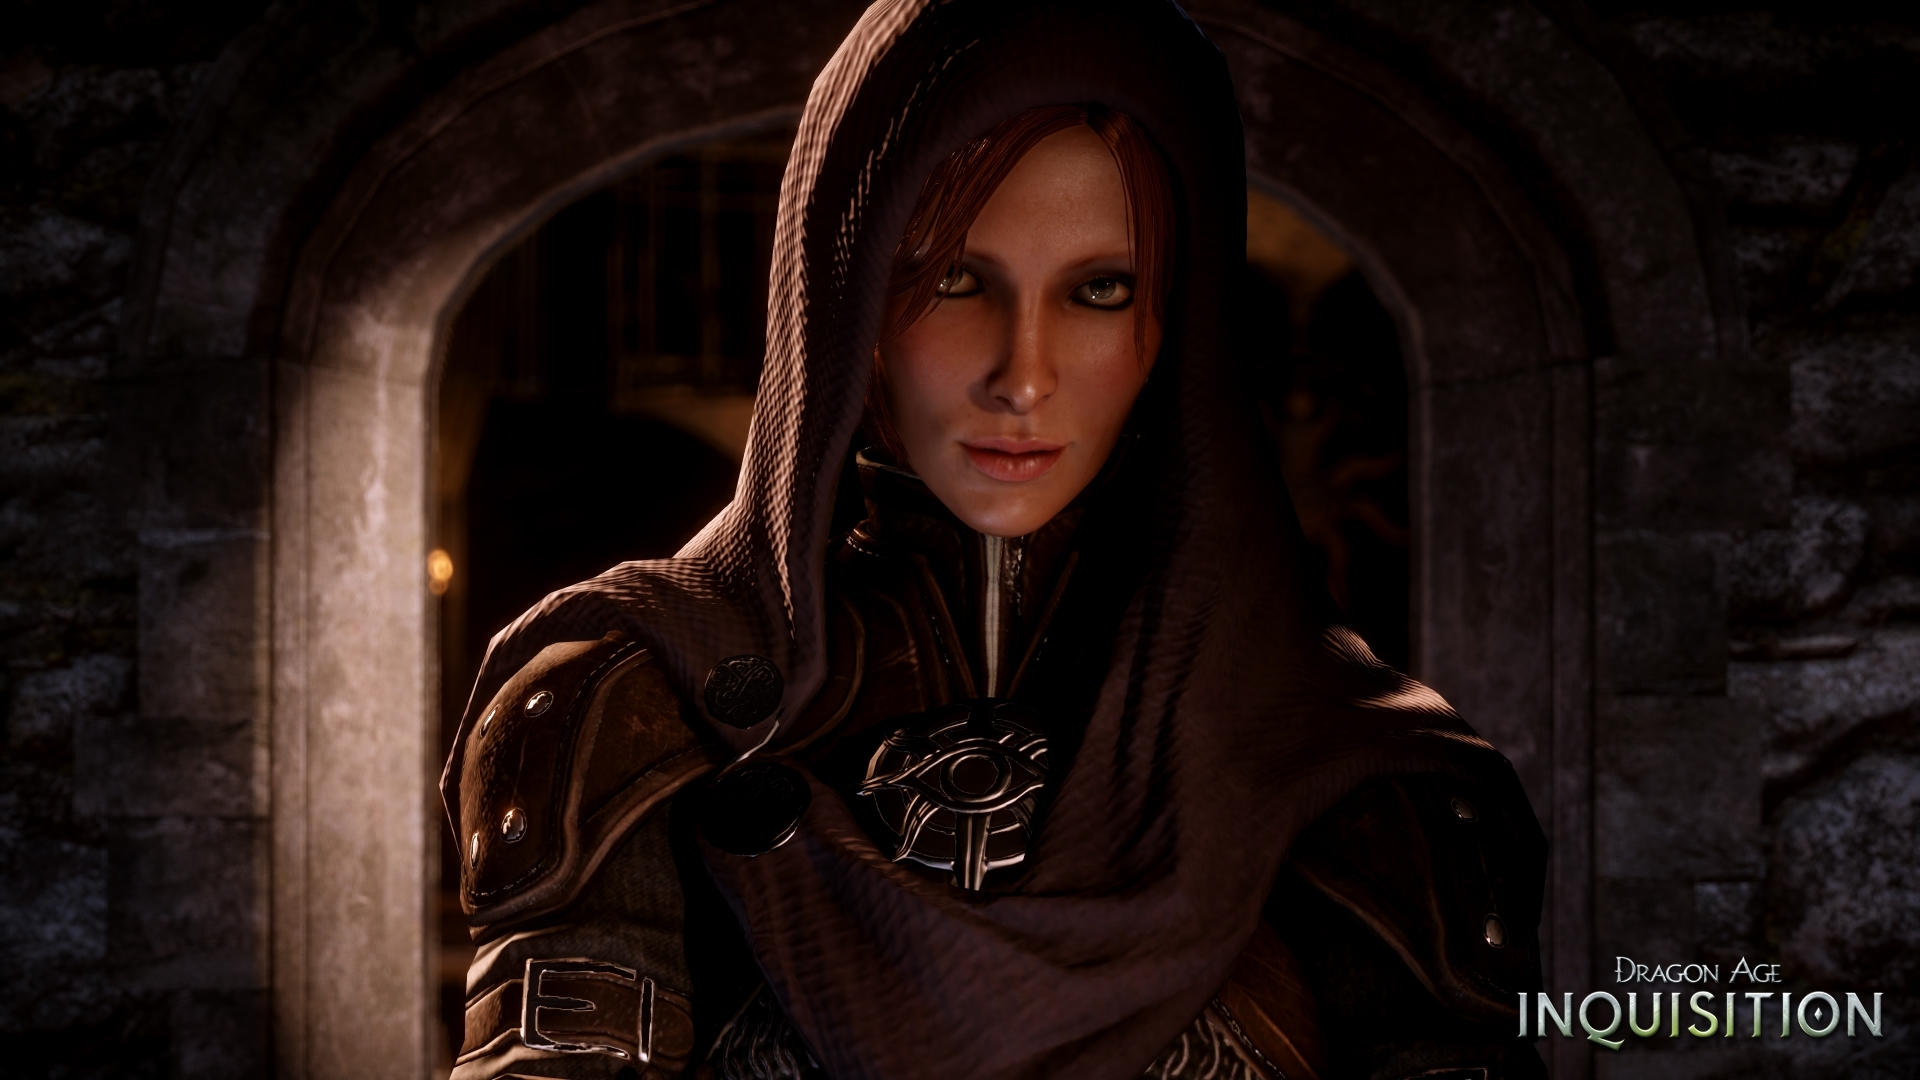 Wallpaper Of Dragon Age Inquisition Leliana Background Hd Image